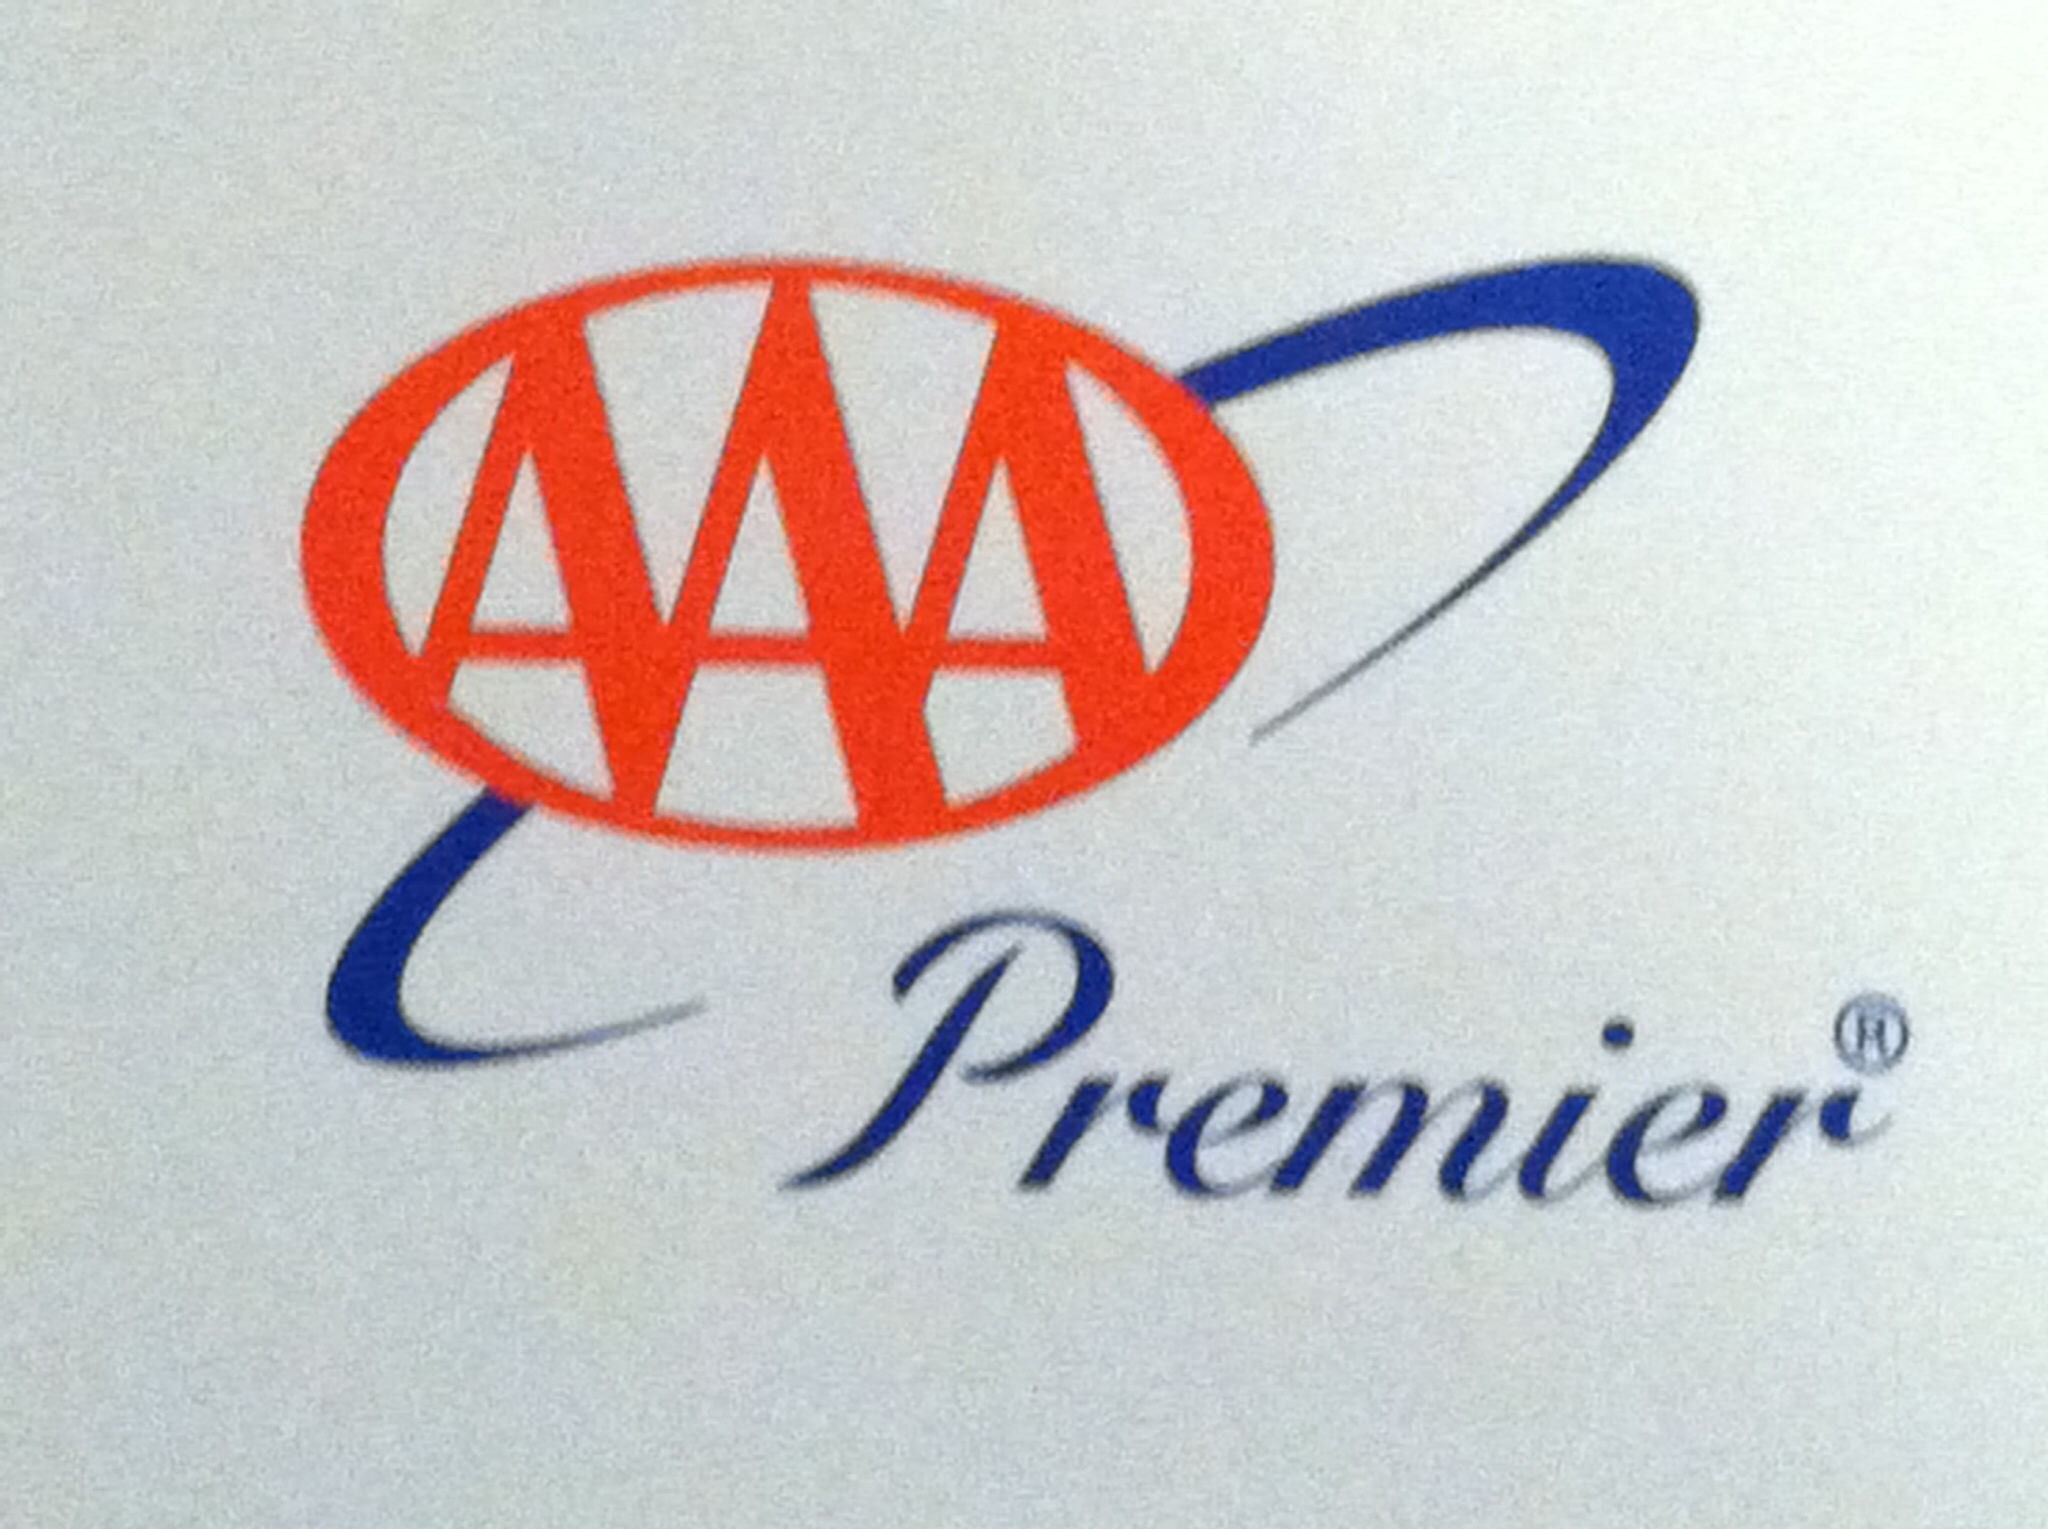 Aaa Car Insurance Quotes Prepossessing Aaa Automobile Club Of Southern California 1500 Commercial Way